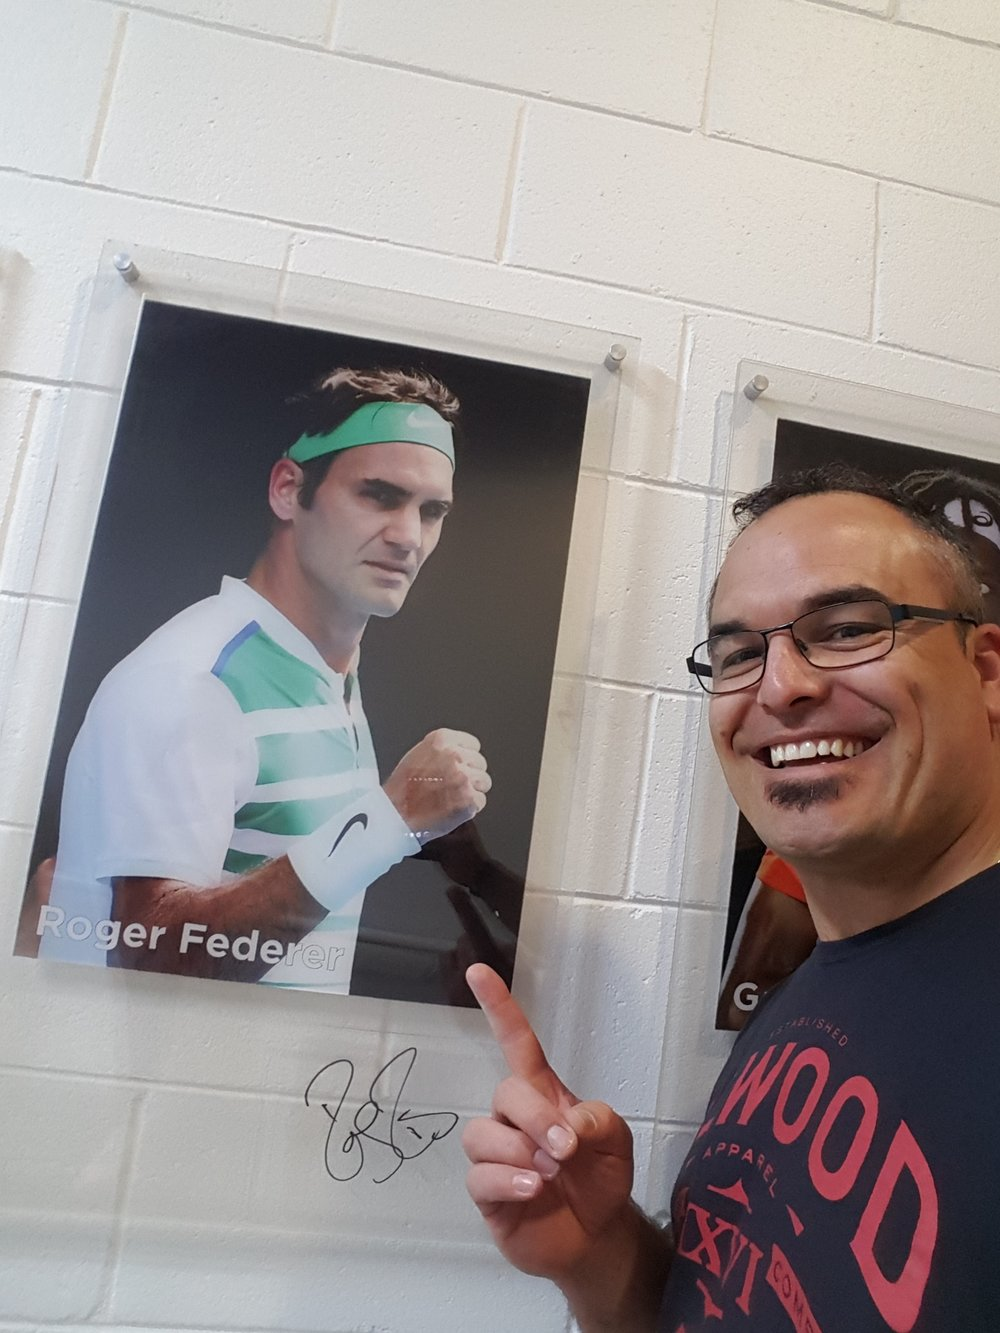 Trent was happy to catch up with Roger Federer under Rod Laver Arena in the Walk of Fame